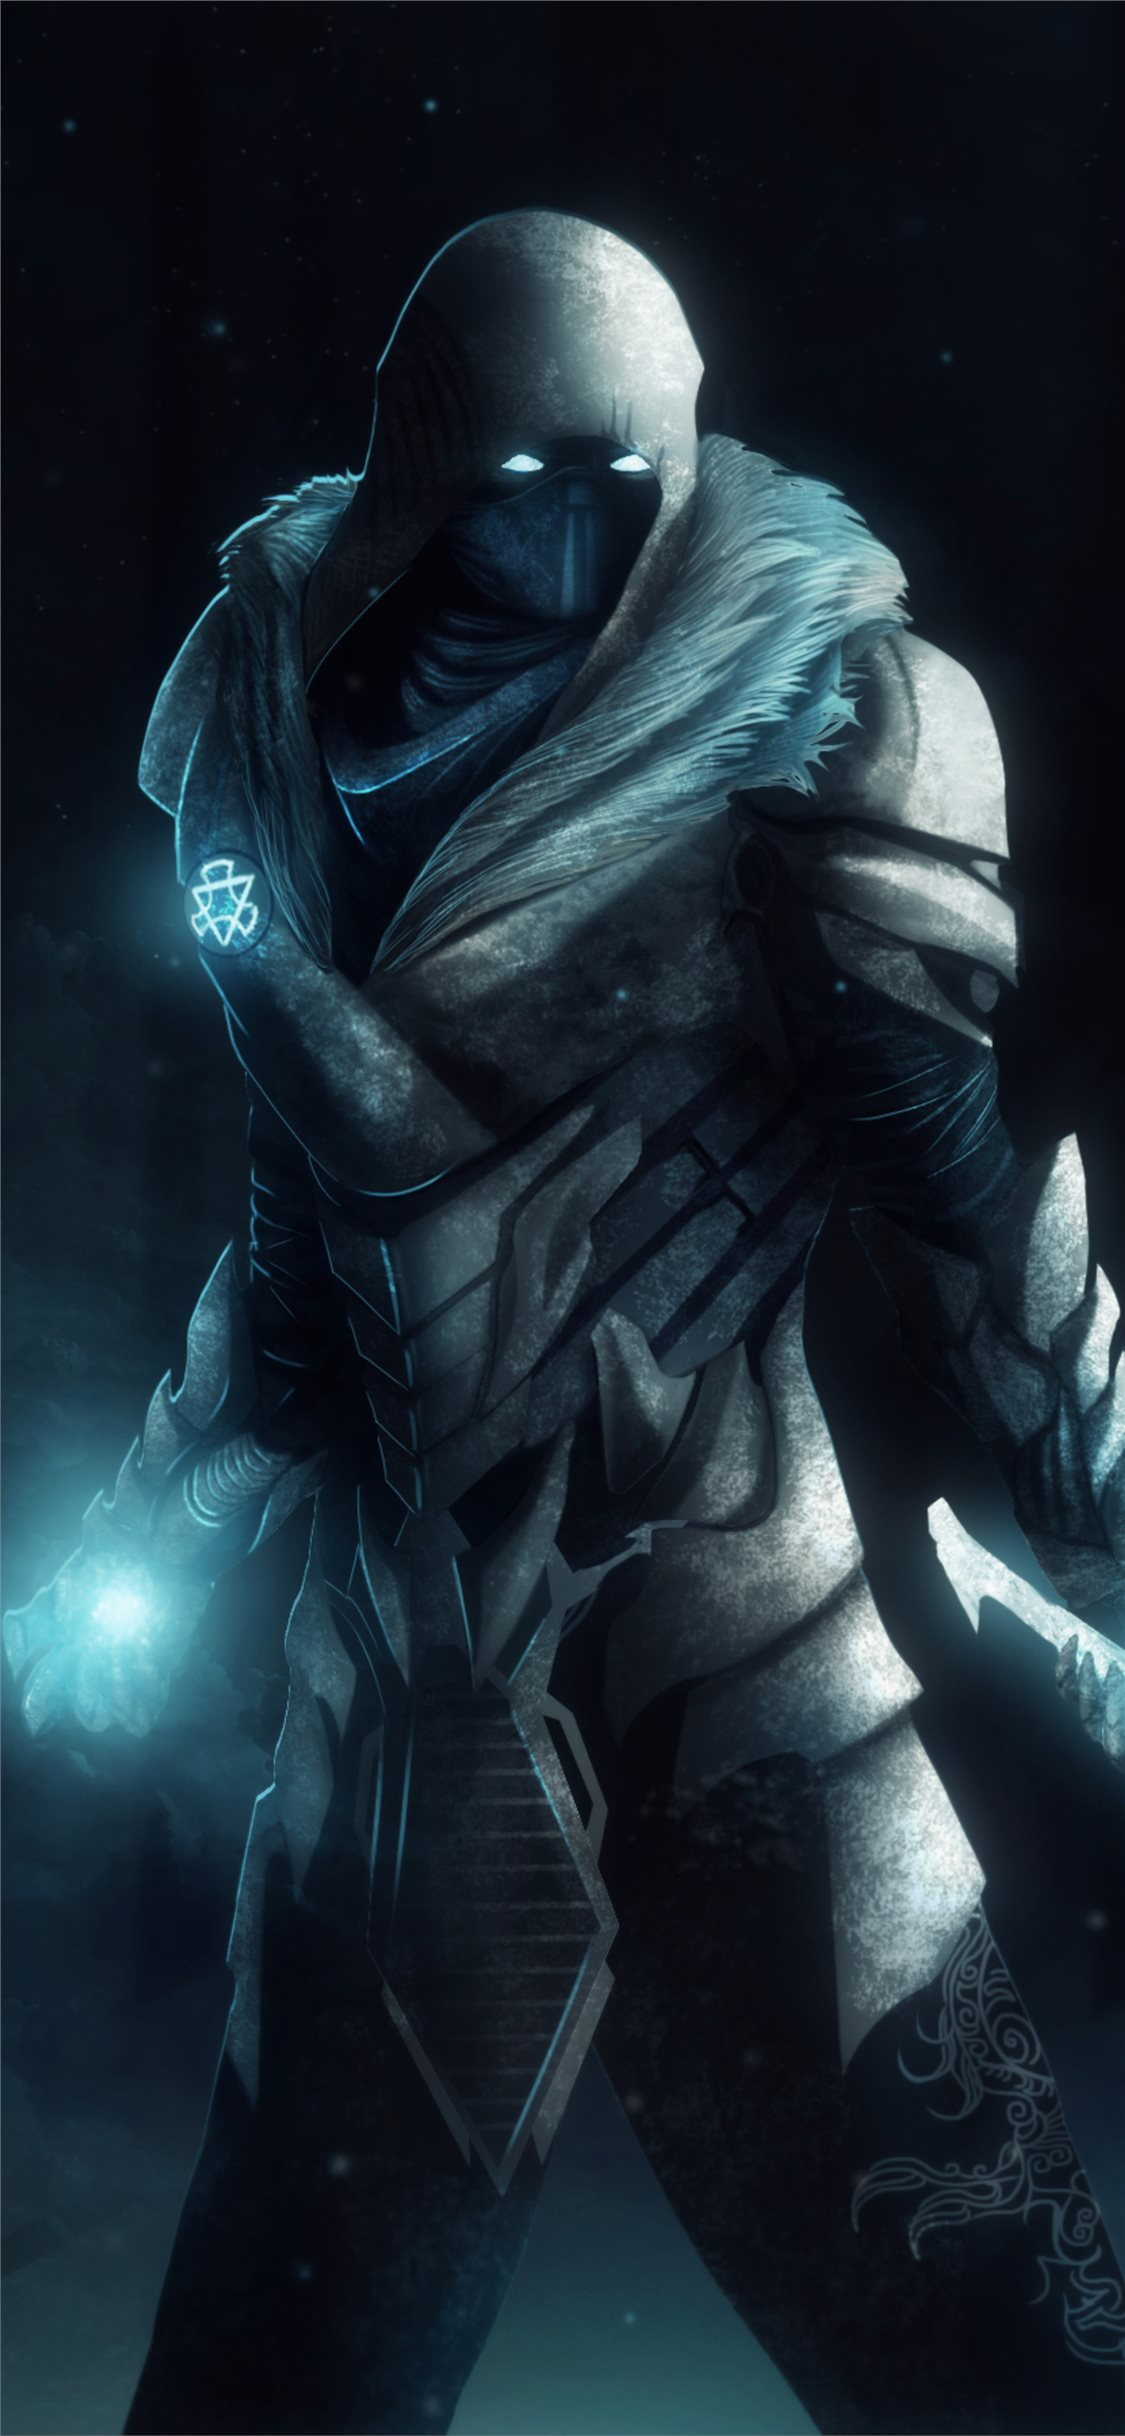 Darka Age Sub Zero 4k Iphone X Wallpapers Free Download